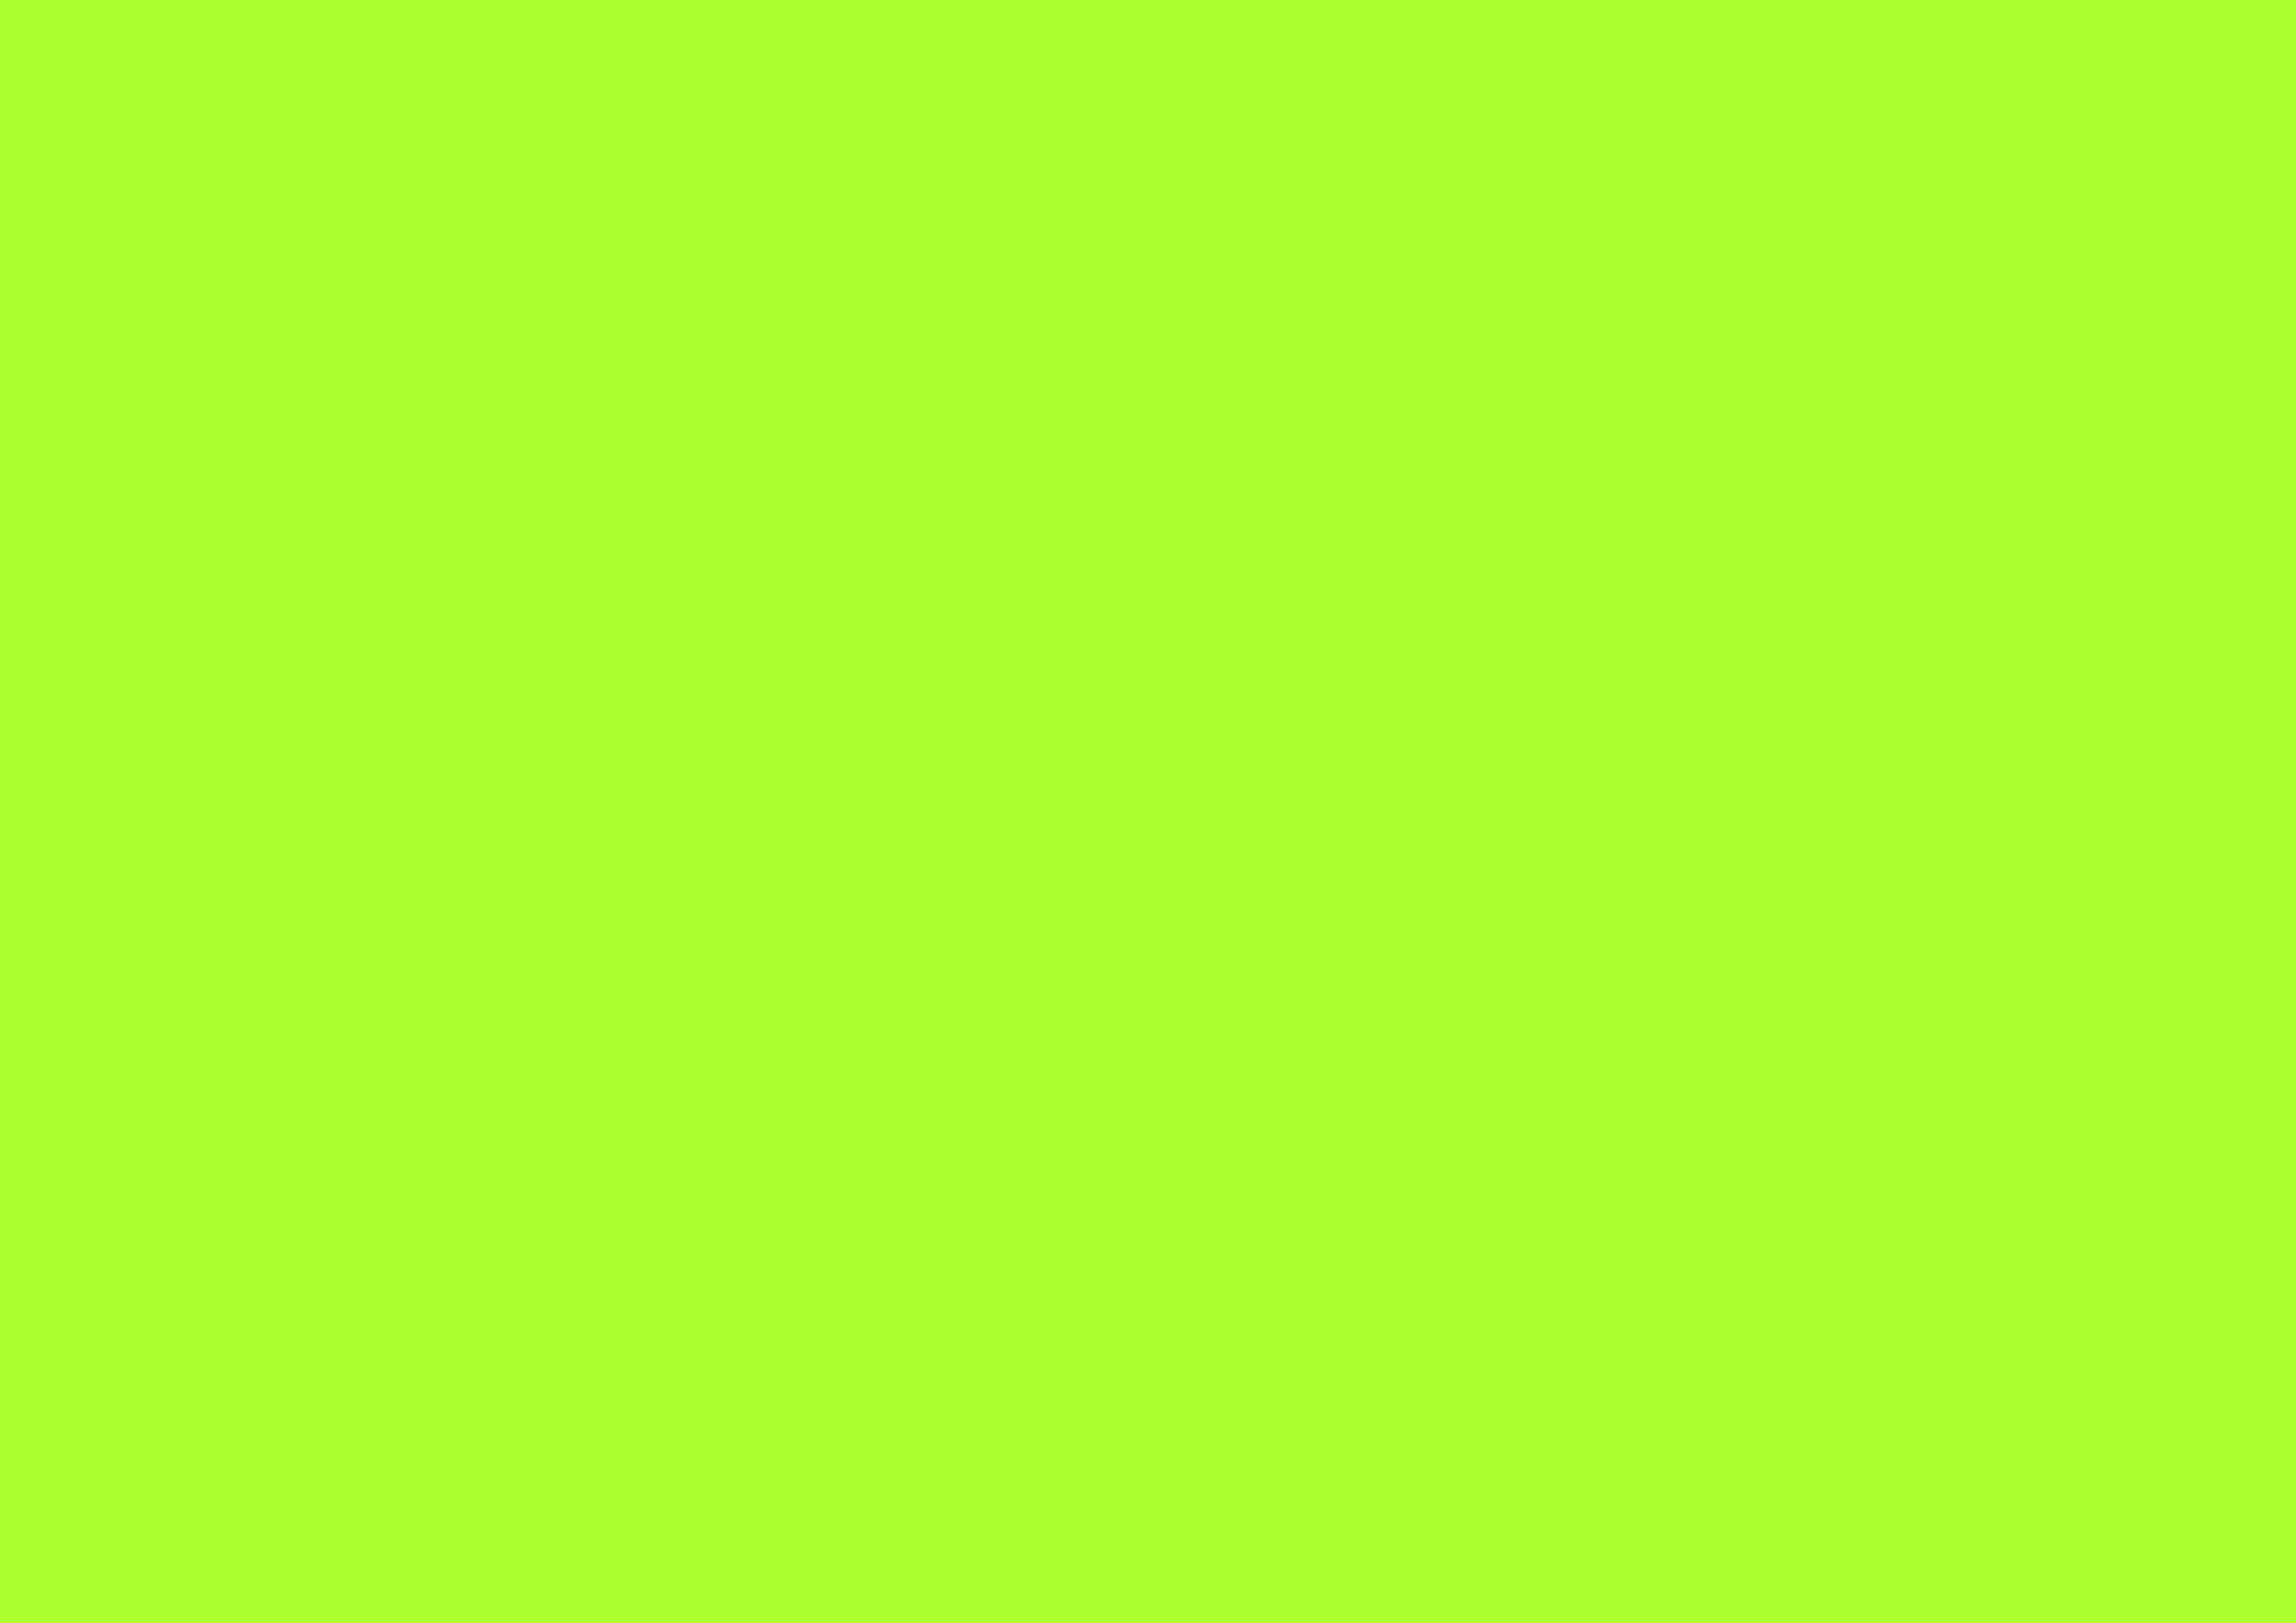 3508x2480 Green-yellow Solid Color Background